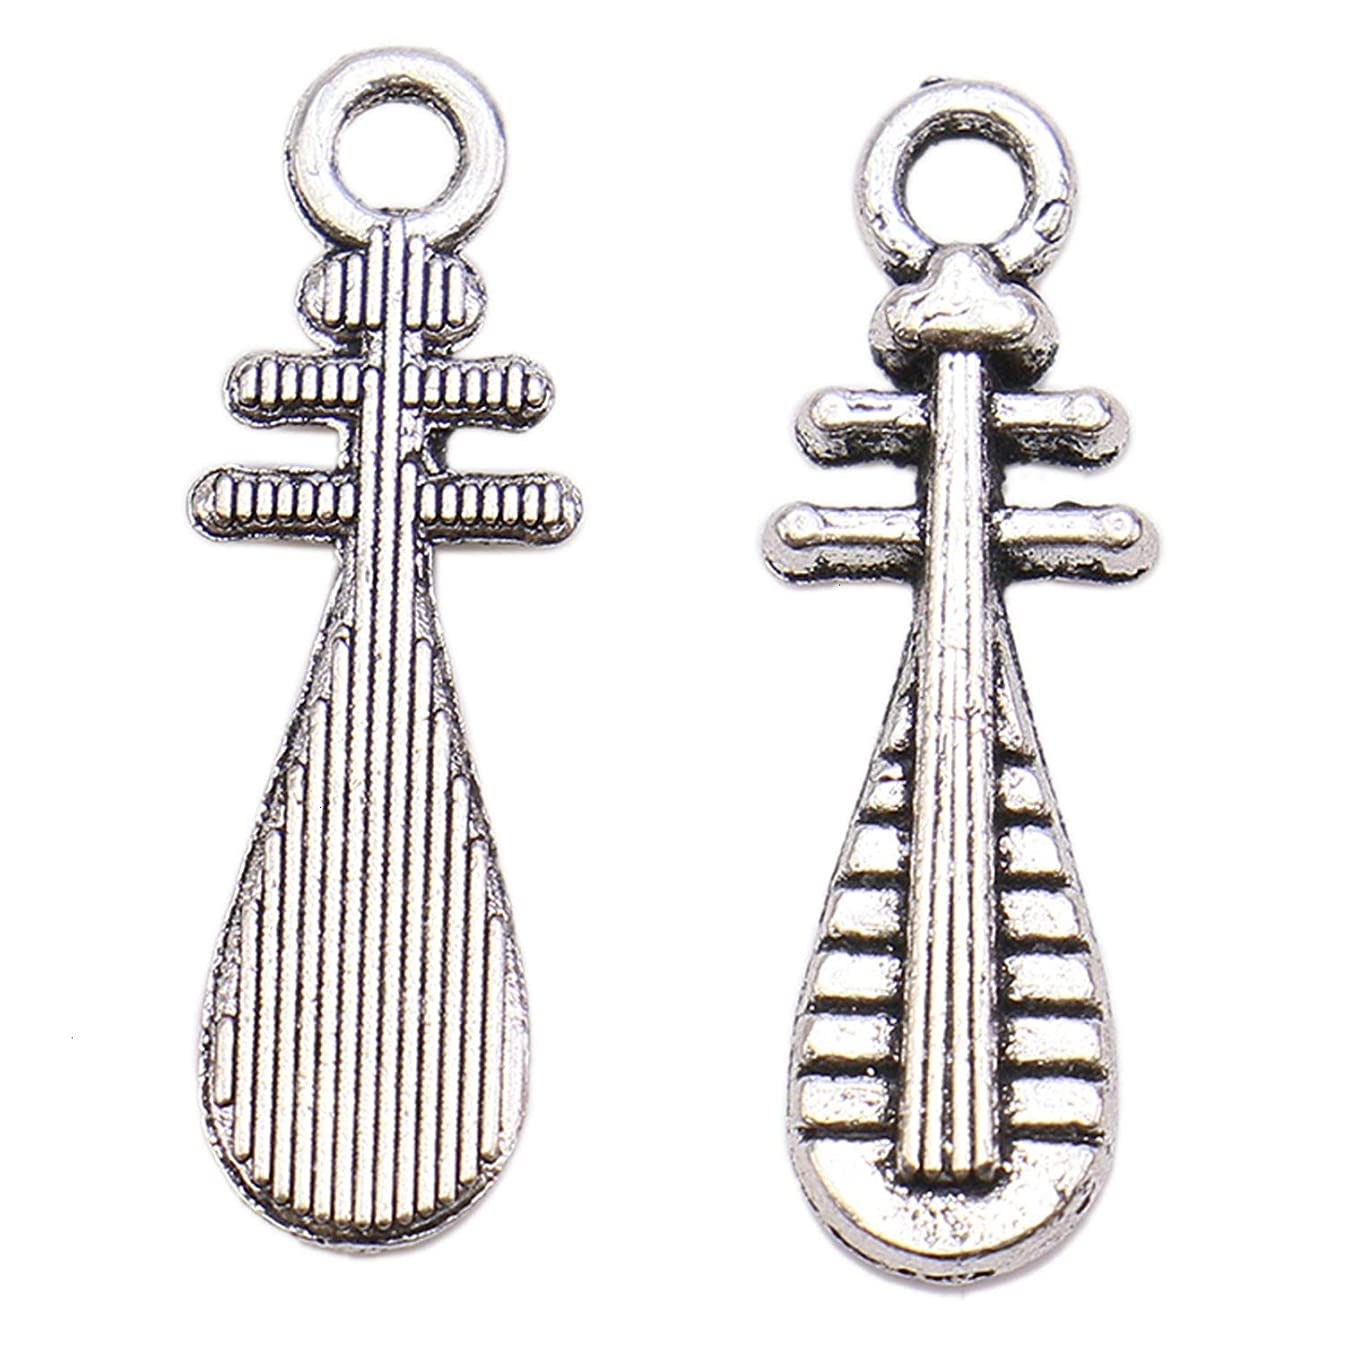 Monrocco 100 Pcs Musical Instruments Charms Pendant Jewelry Findings for Jewelry Making Necklace Bracelet